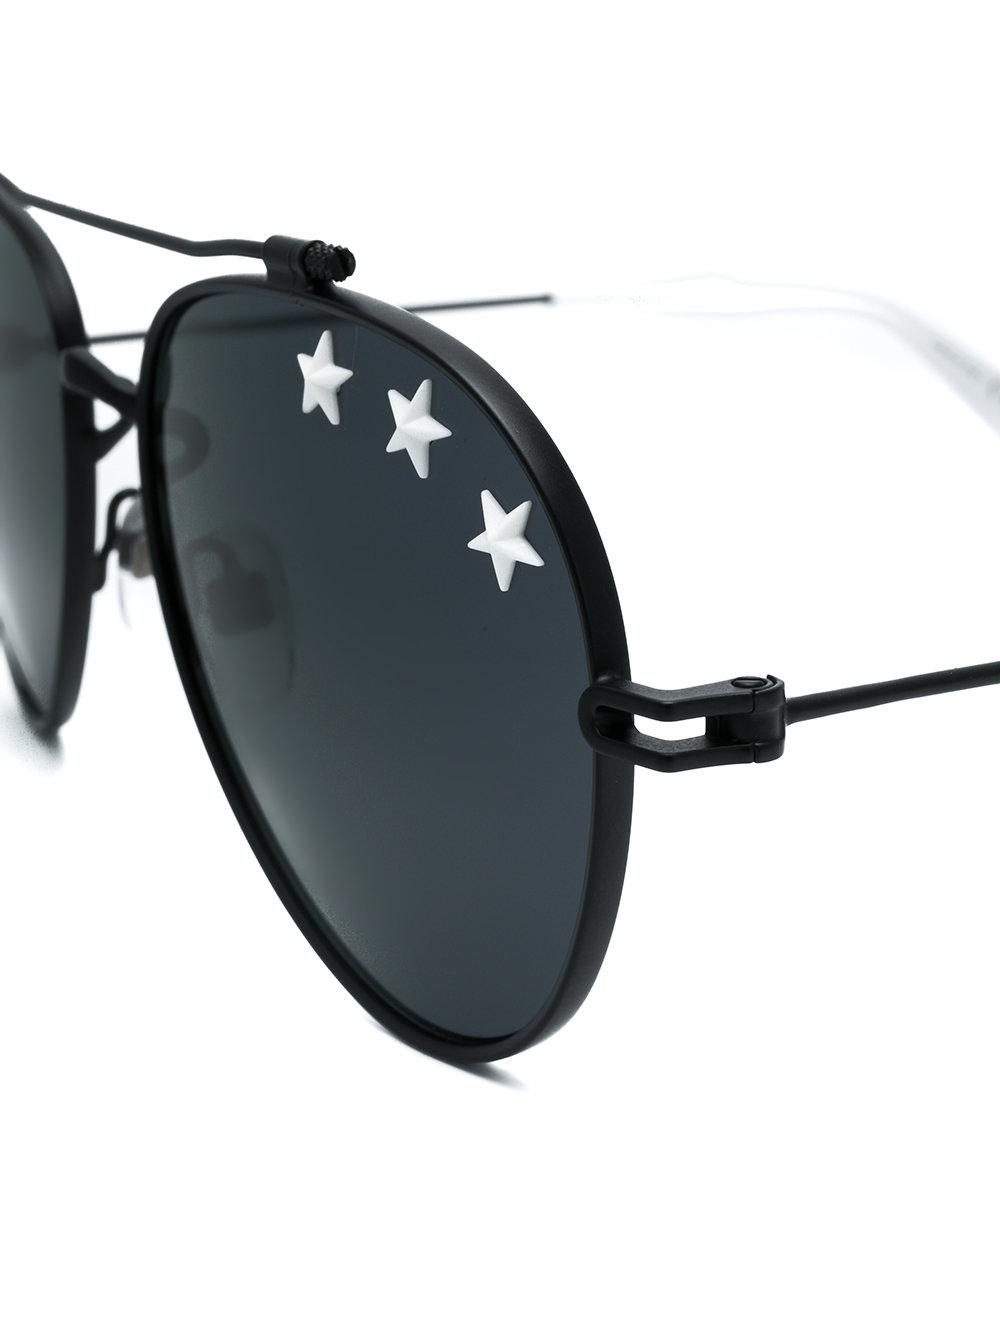 11052e5273 Givenchy Star Studded Aviators in Black for Men - Lyst